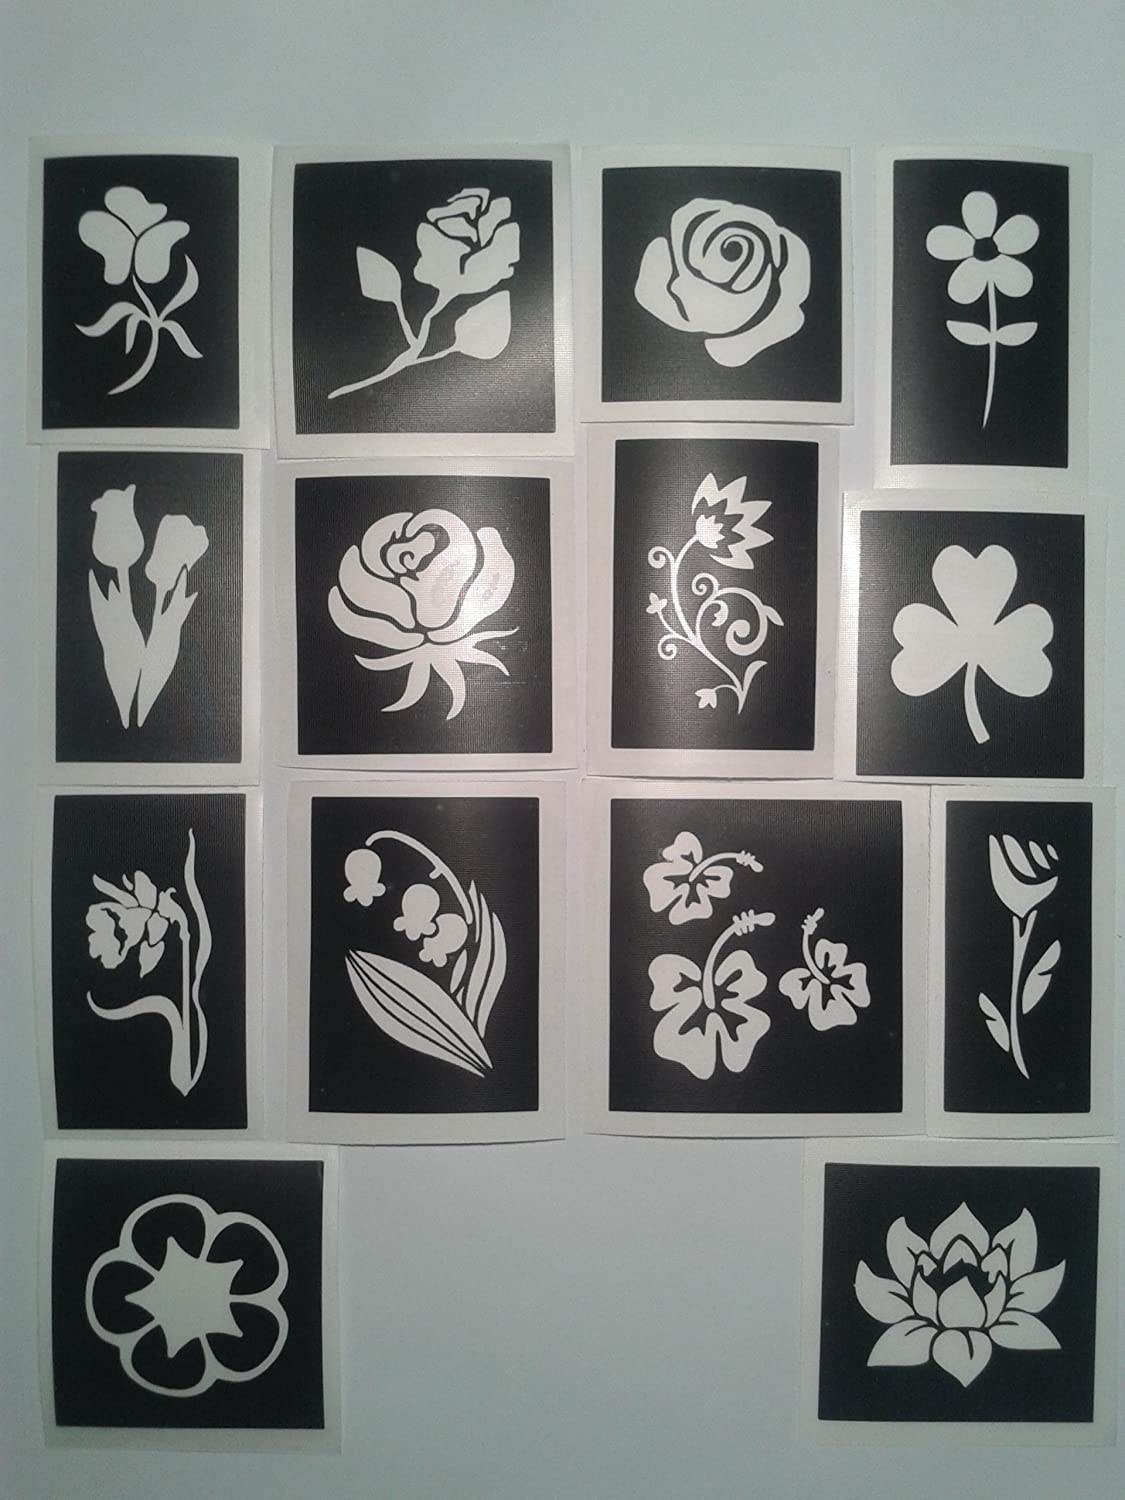 25 x flower stencils for etching on glass mixed daffodil tulip rose daisy Dazzle Glitter Tattoos